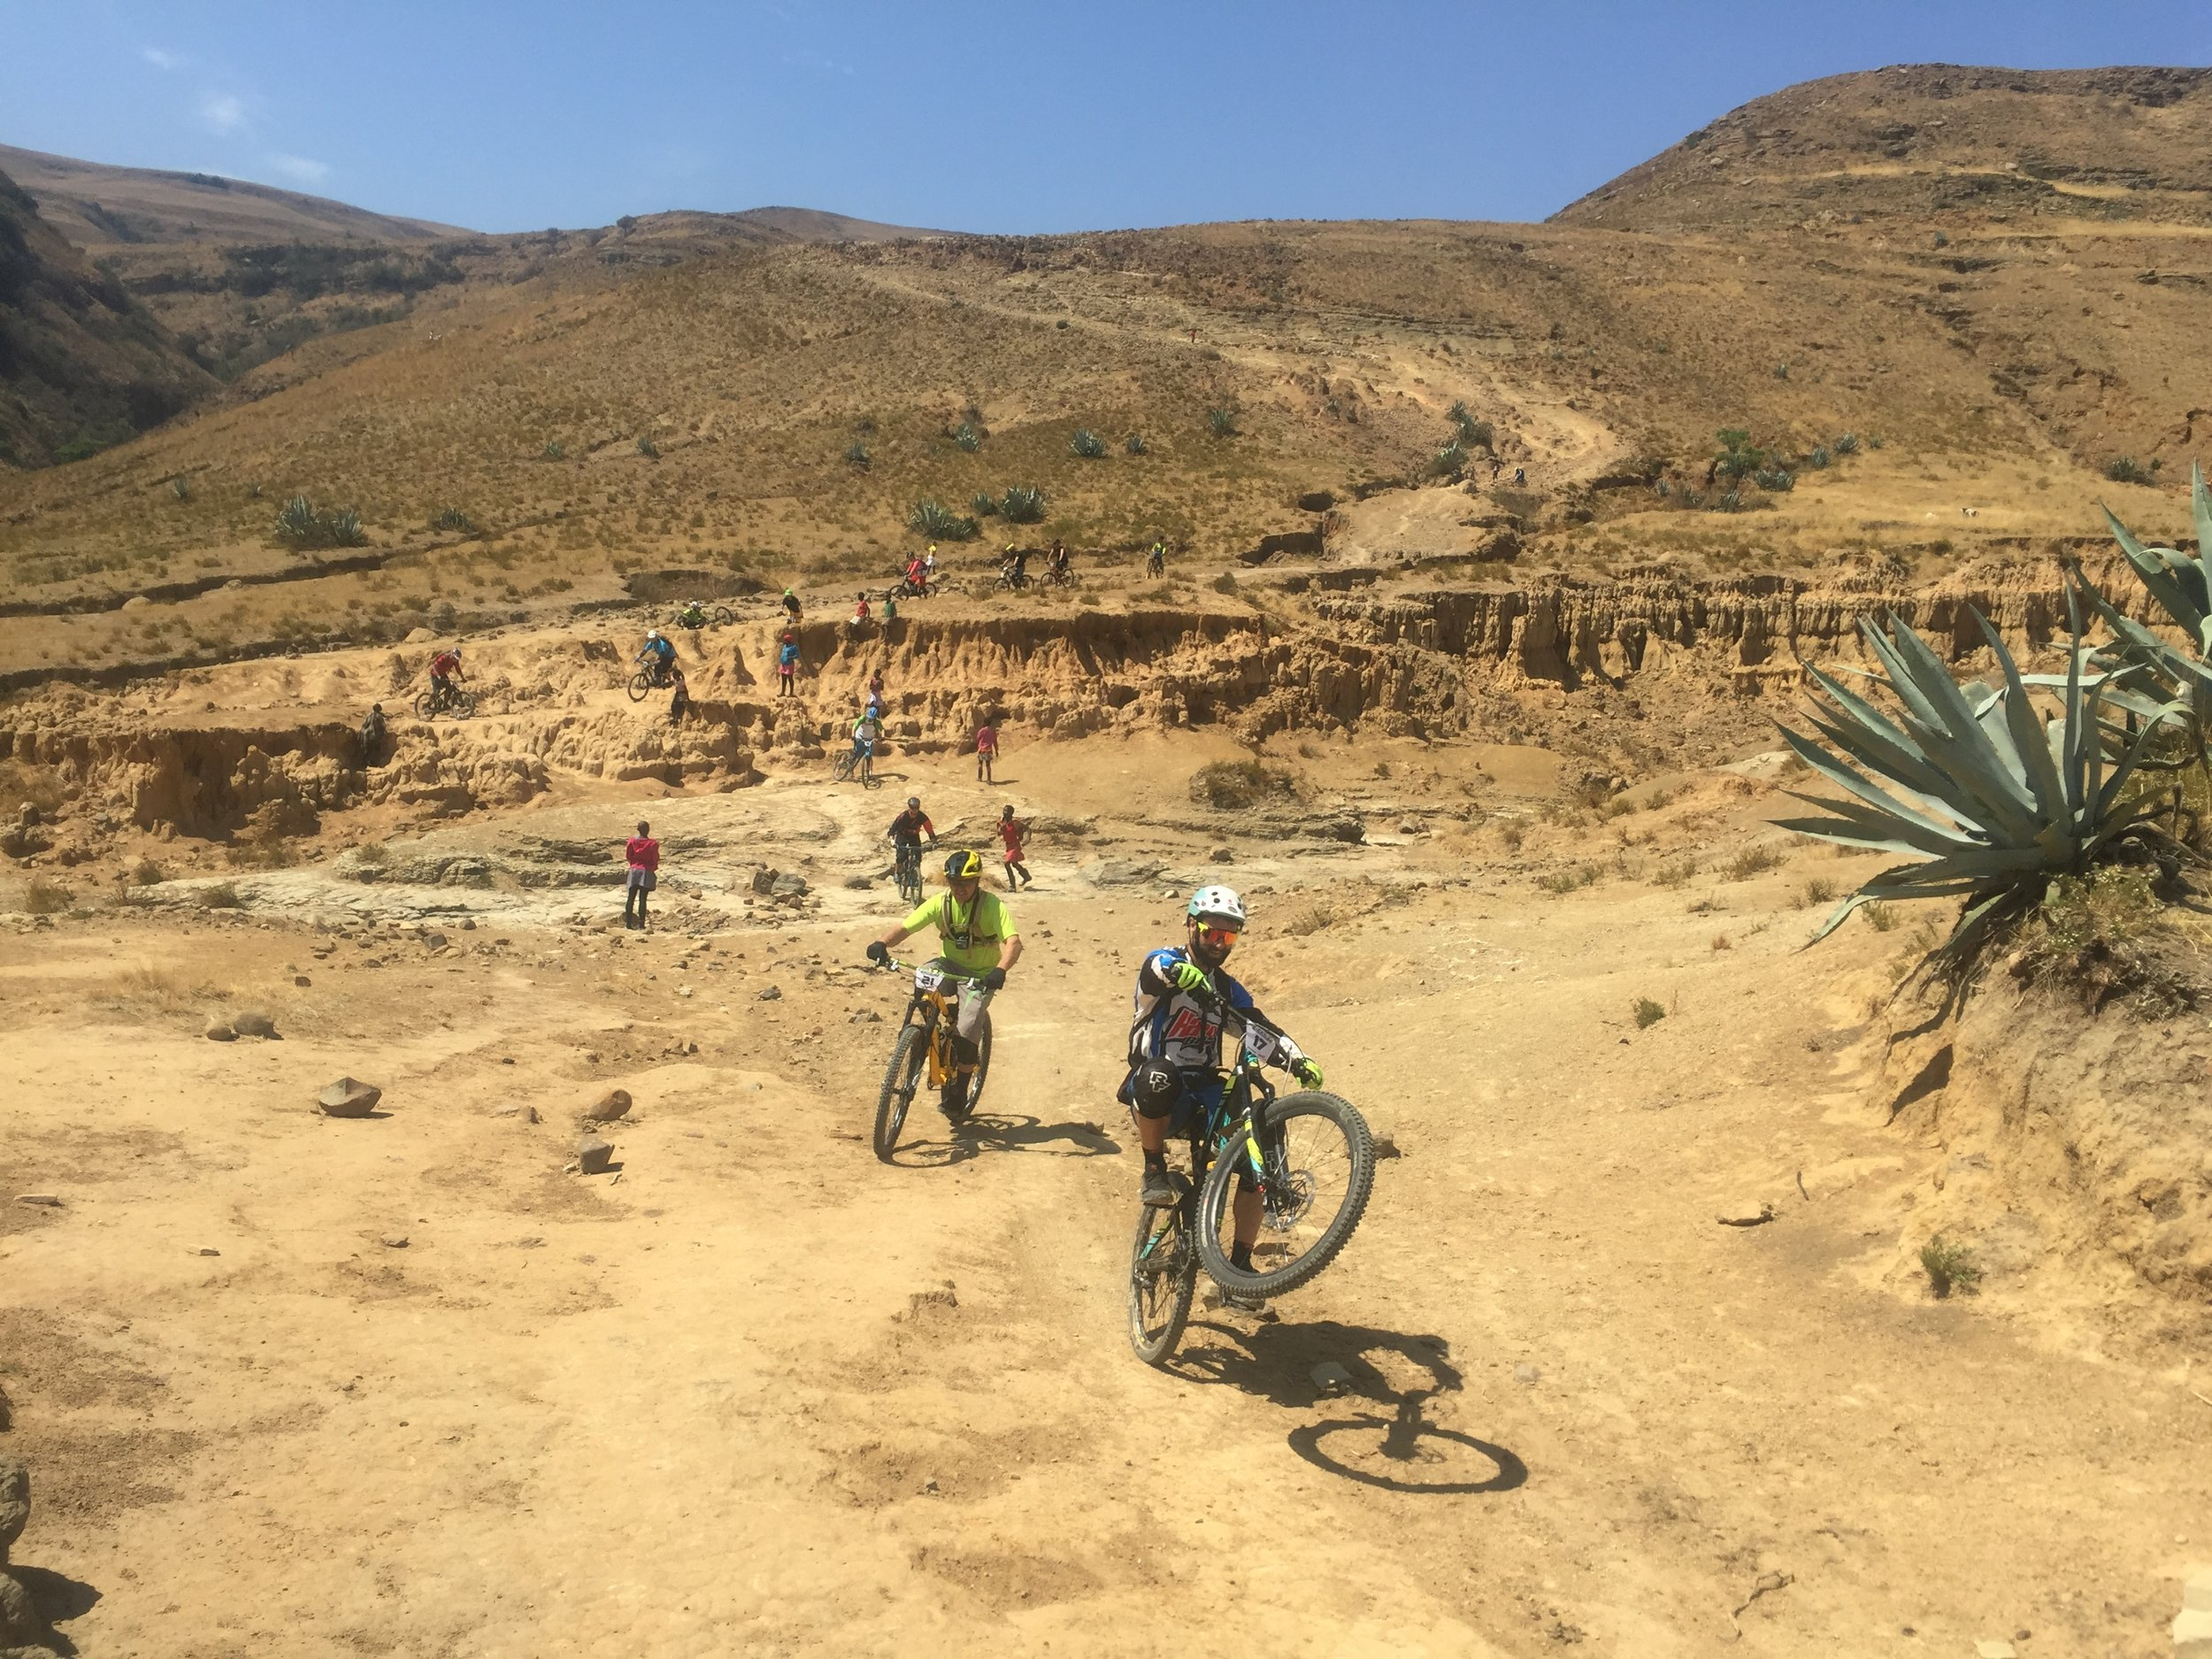 South Africa heli-biking. - We've teamed up with our buddies at WildSide Explore to offer you this unique and unforgettable trip to South Africa.